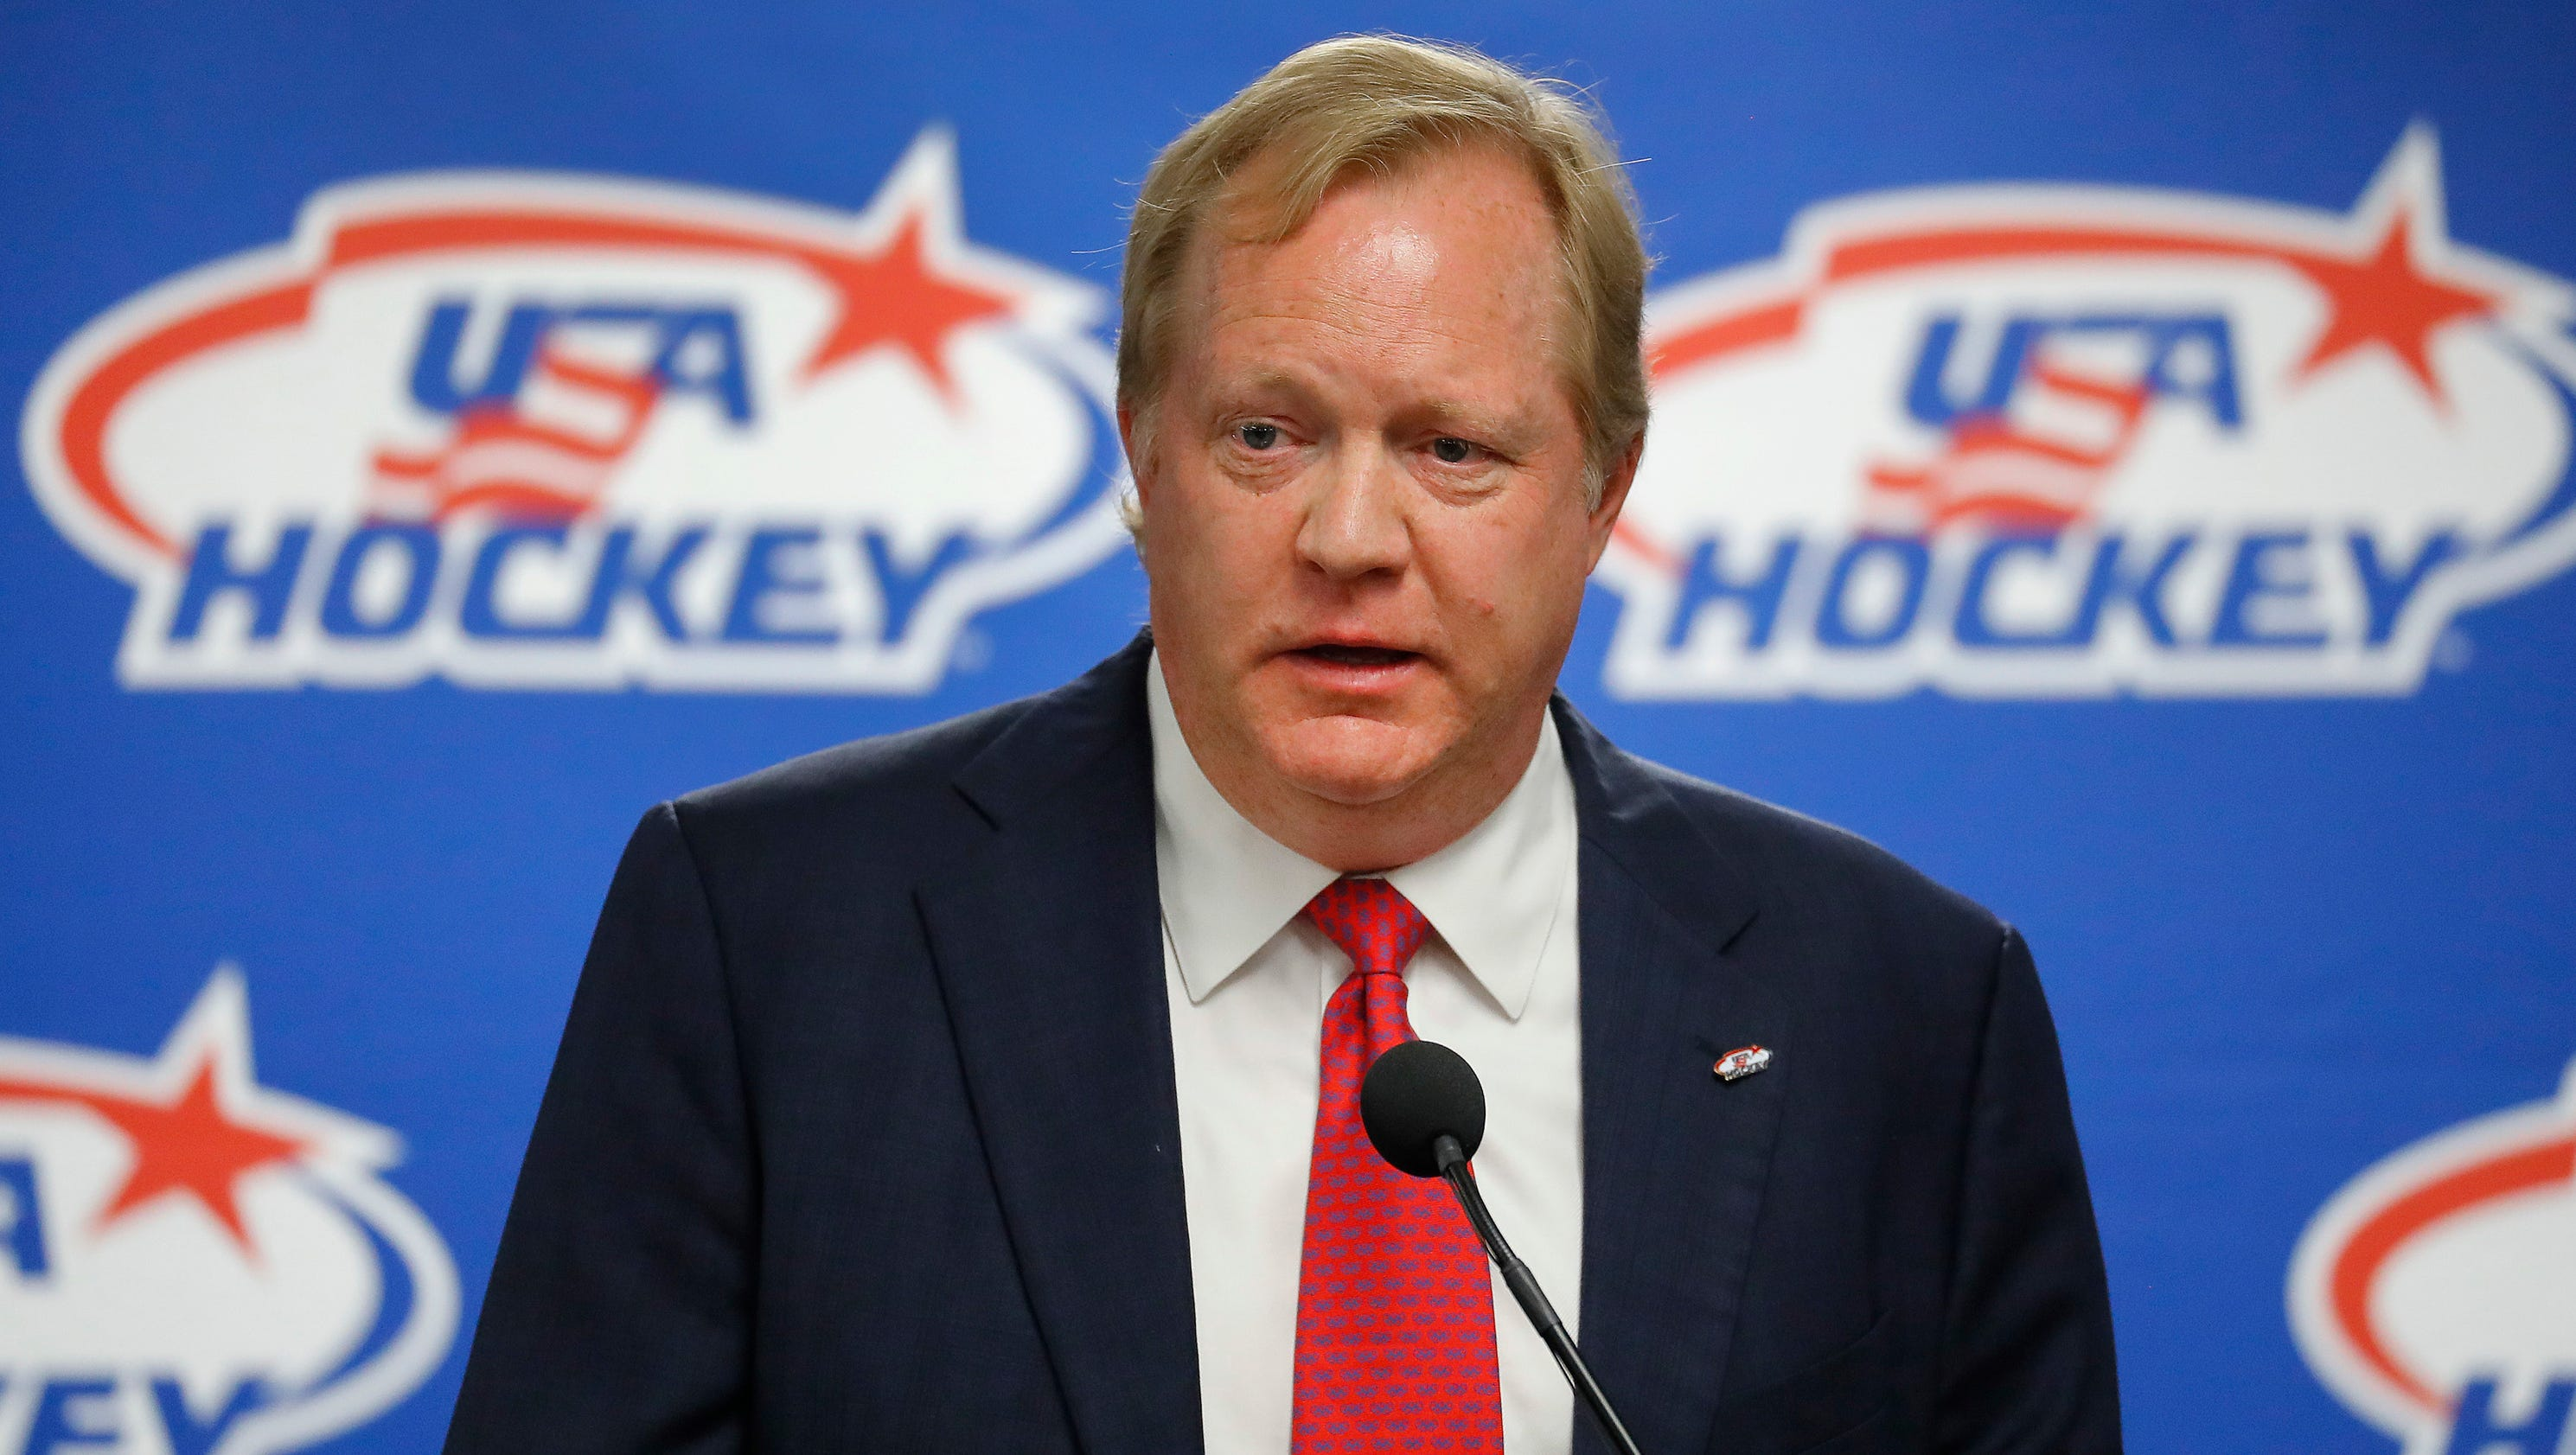 636521436590362465-ap-usa-hockey-johannson-96770447